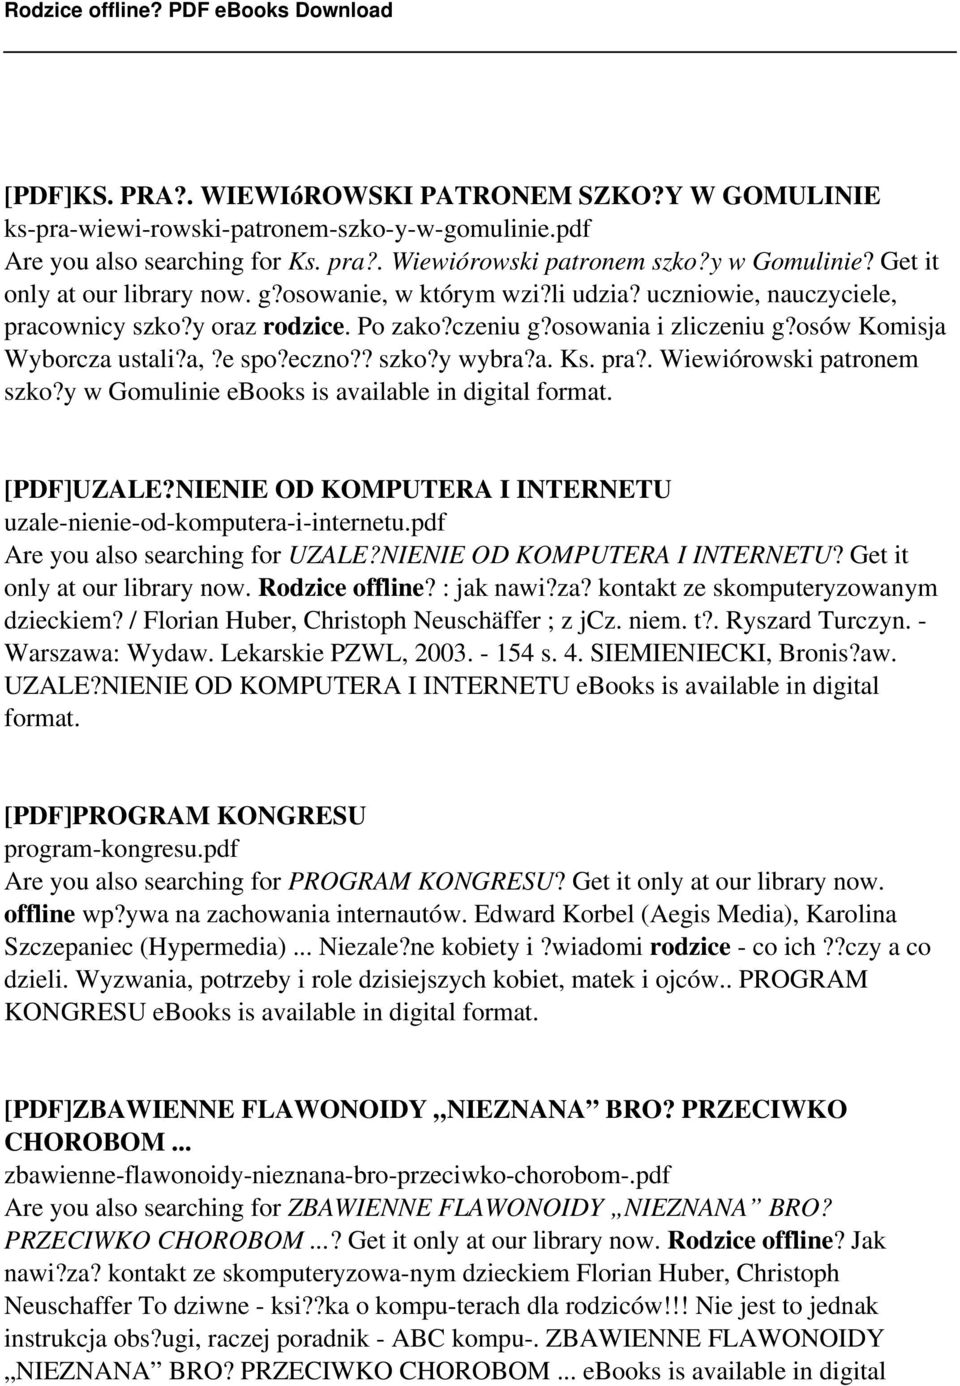 e spo?eczno?? szko?y wybra?a. Ks. pra?. Wiewiórowski patronem szko?y w Gomulinie ebooks is available in digital format. [PDF]UZALE?